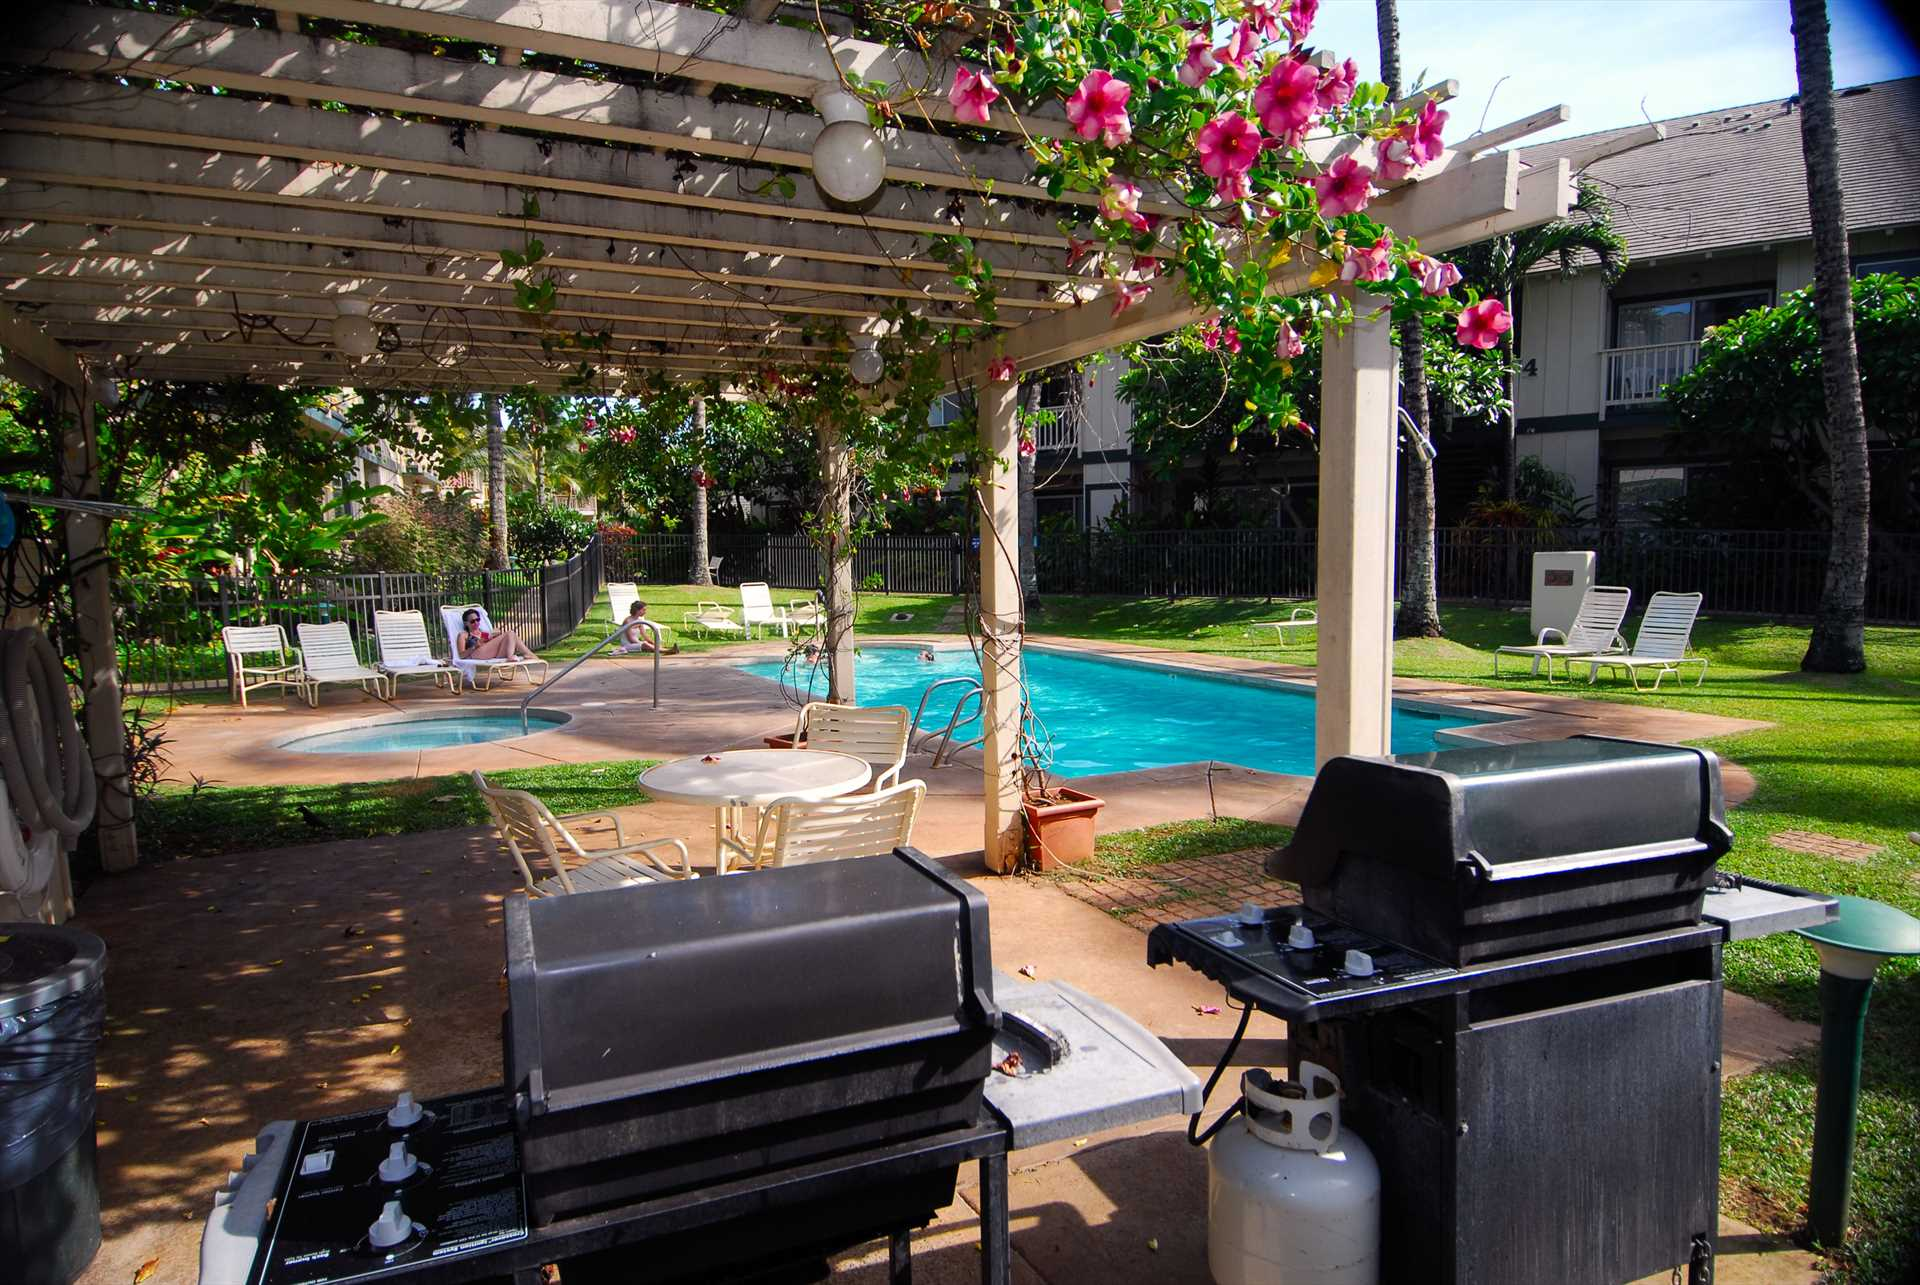 BBQ area at poolside